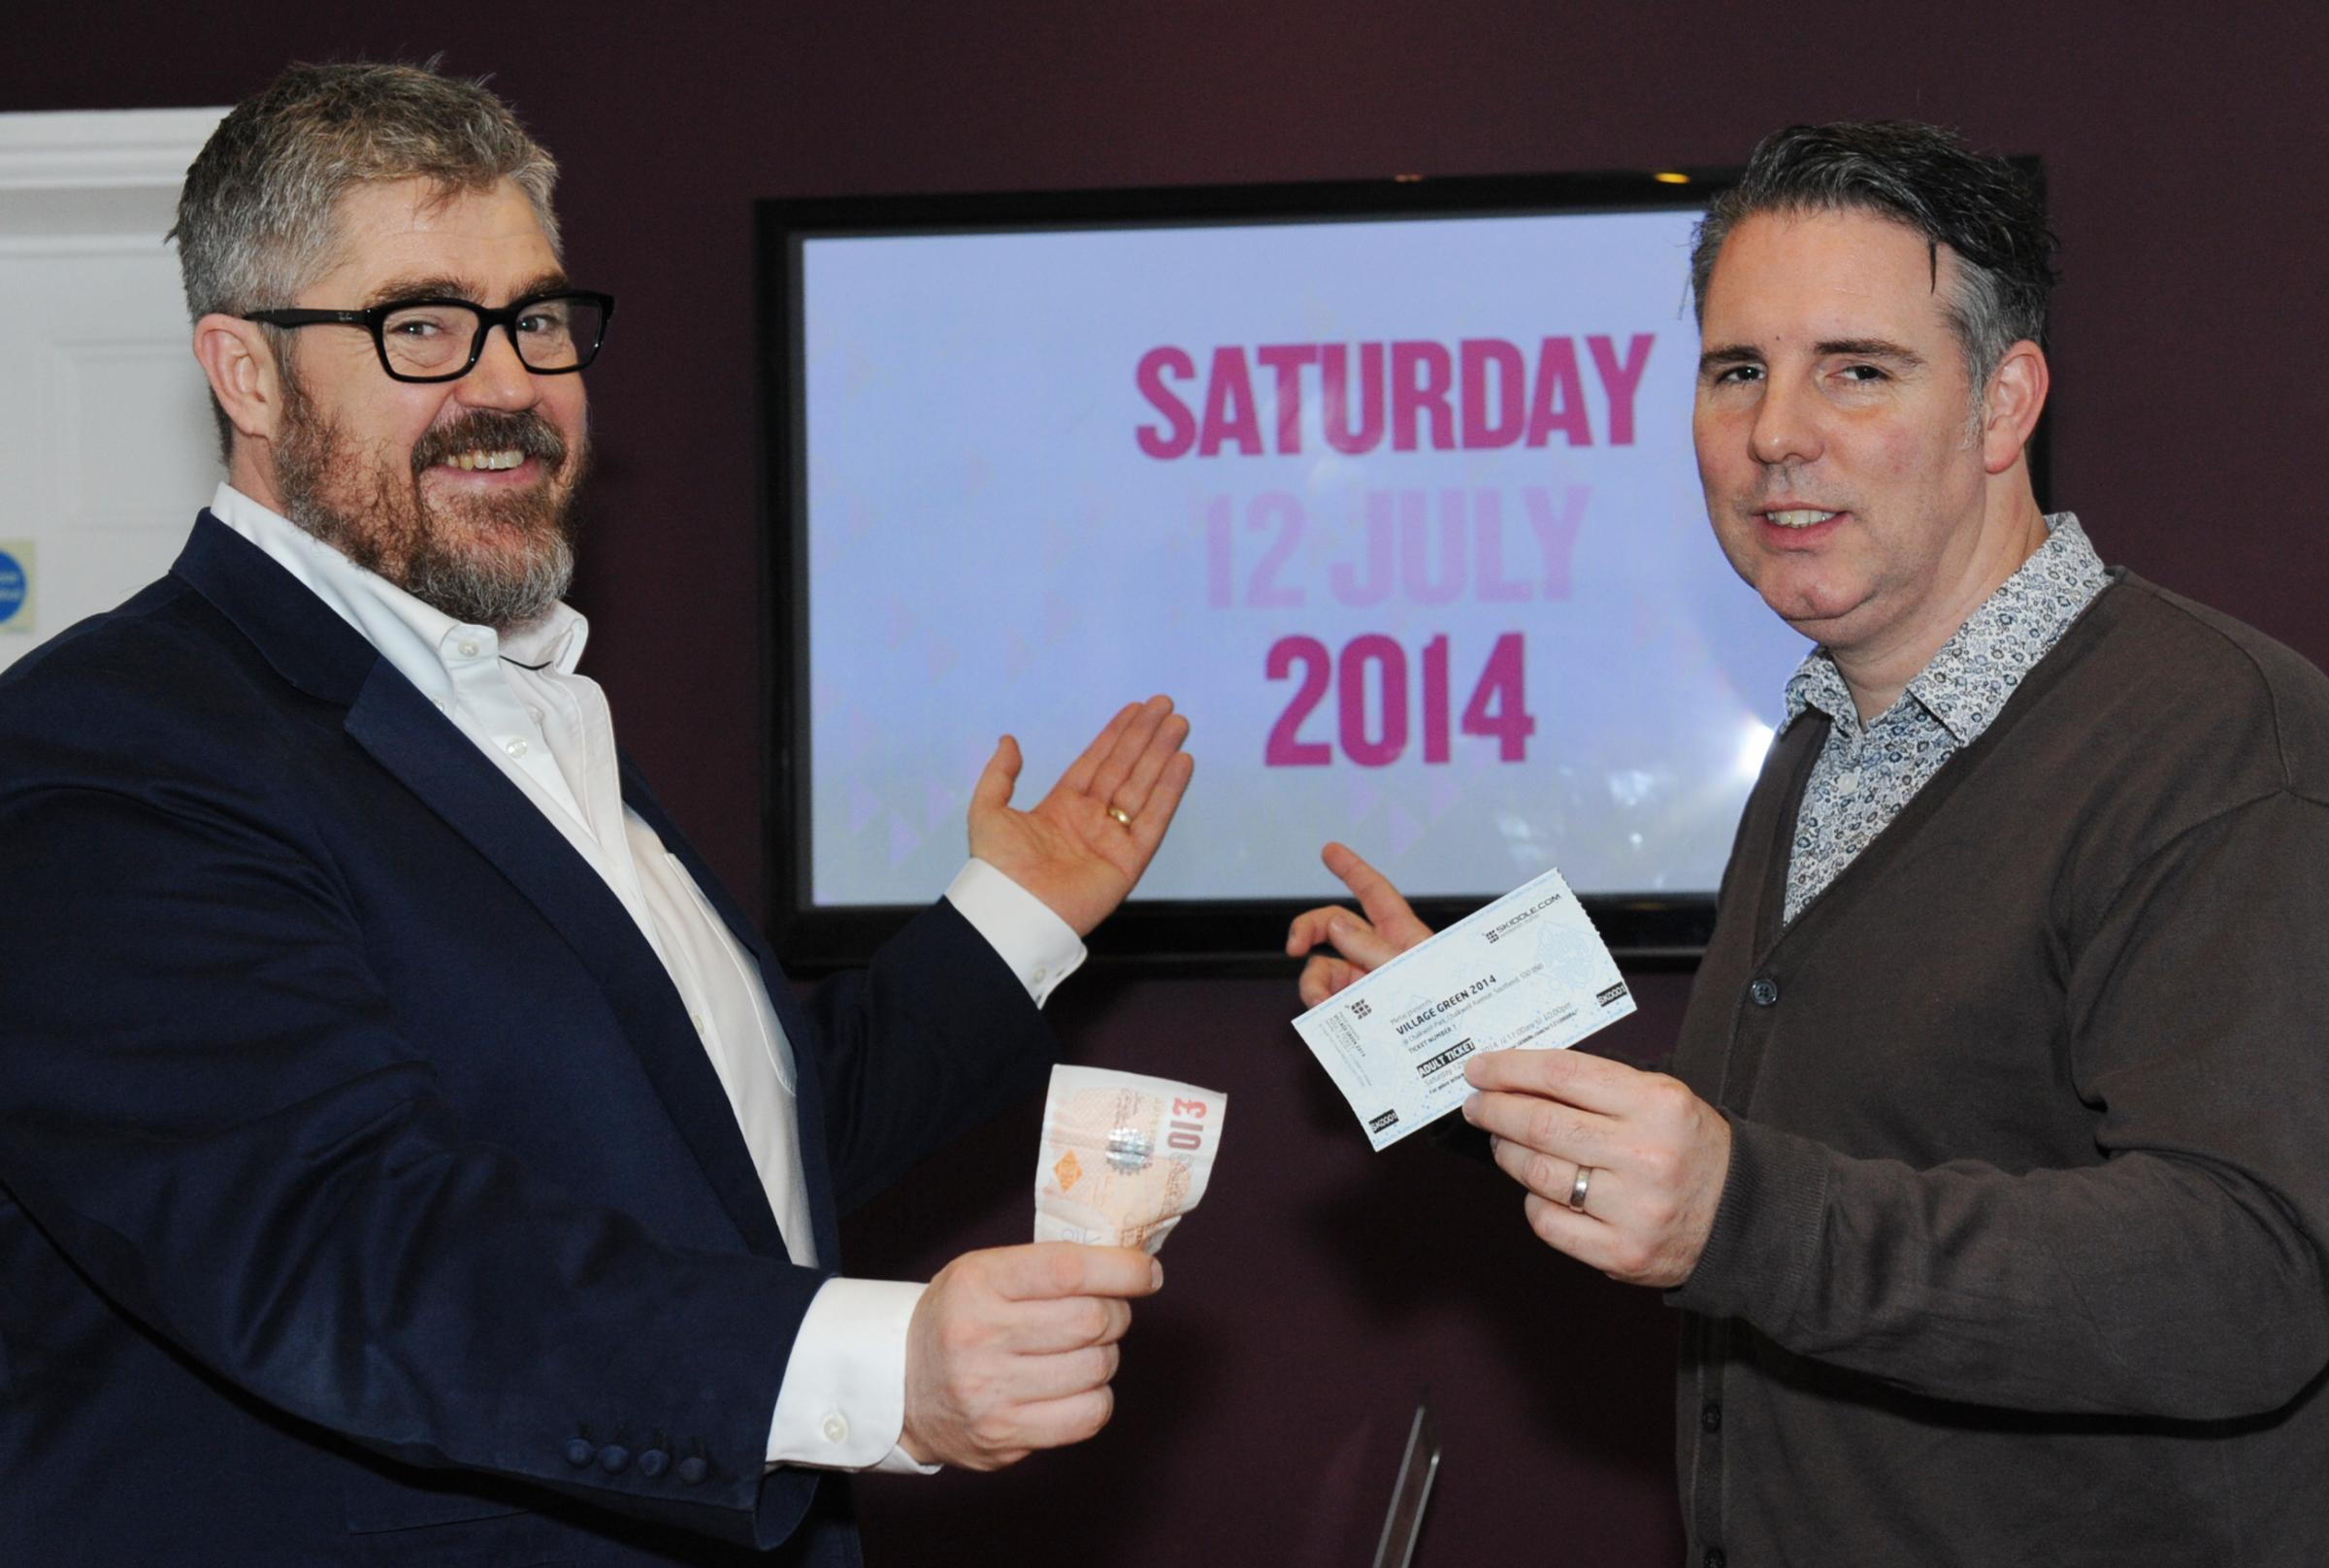 Leigh's Phill Jupitus buying the first ticket to Village Green 2014